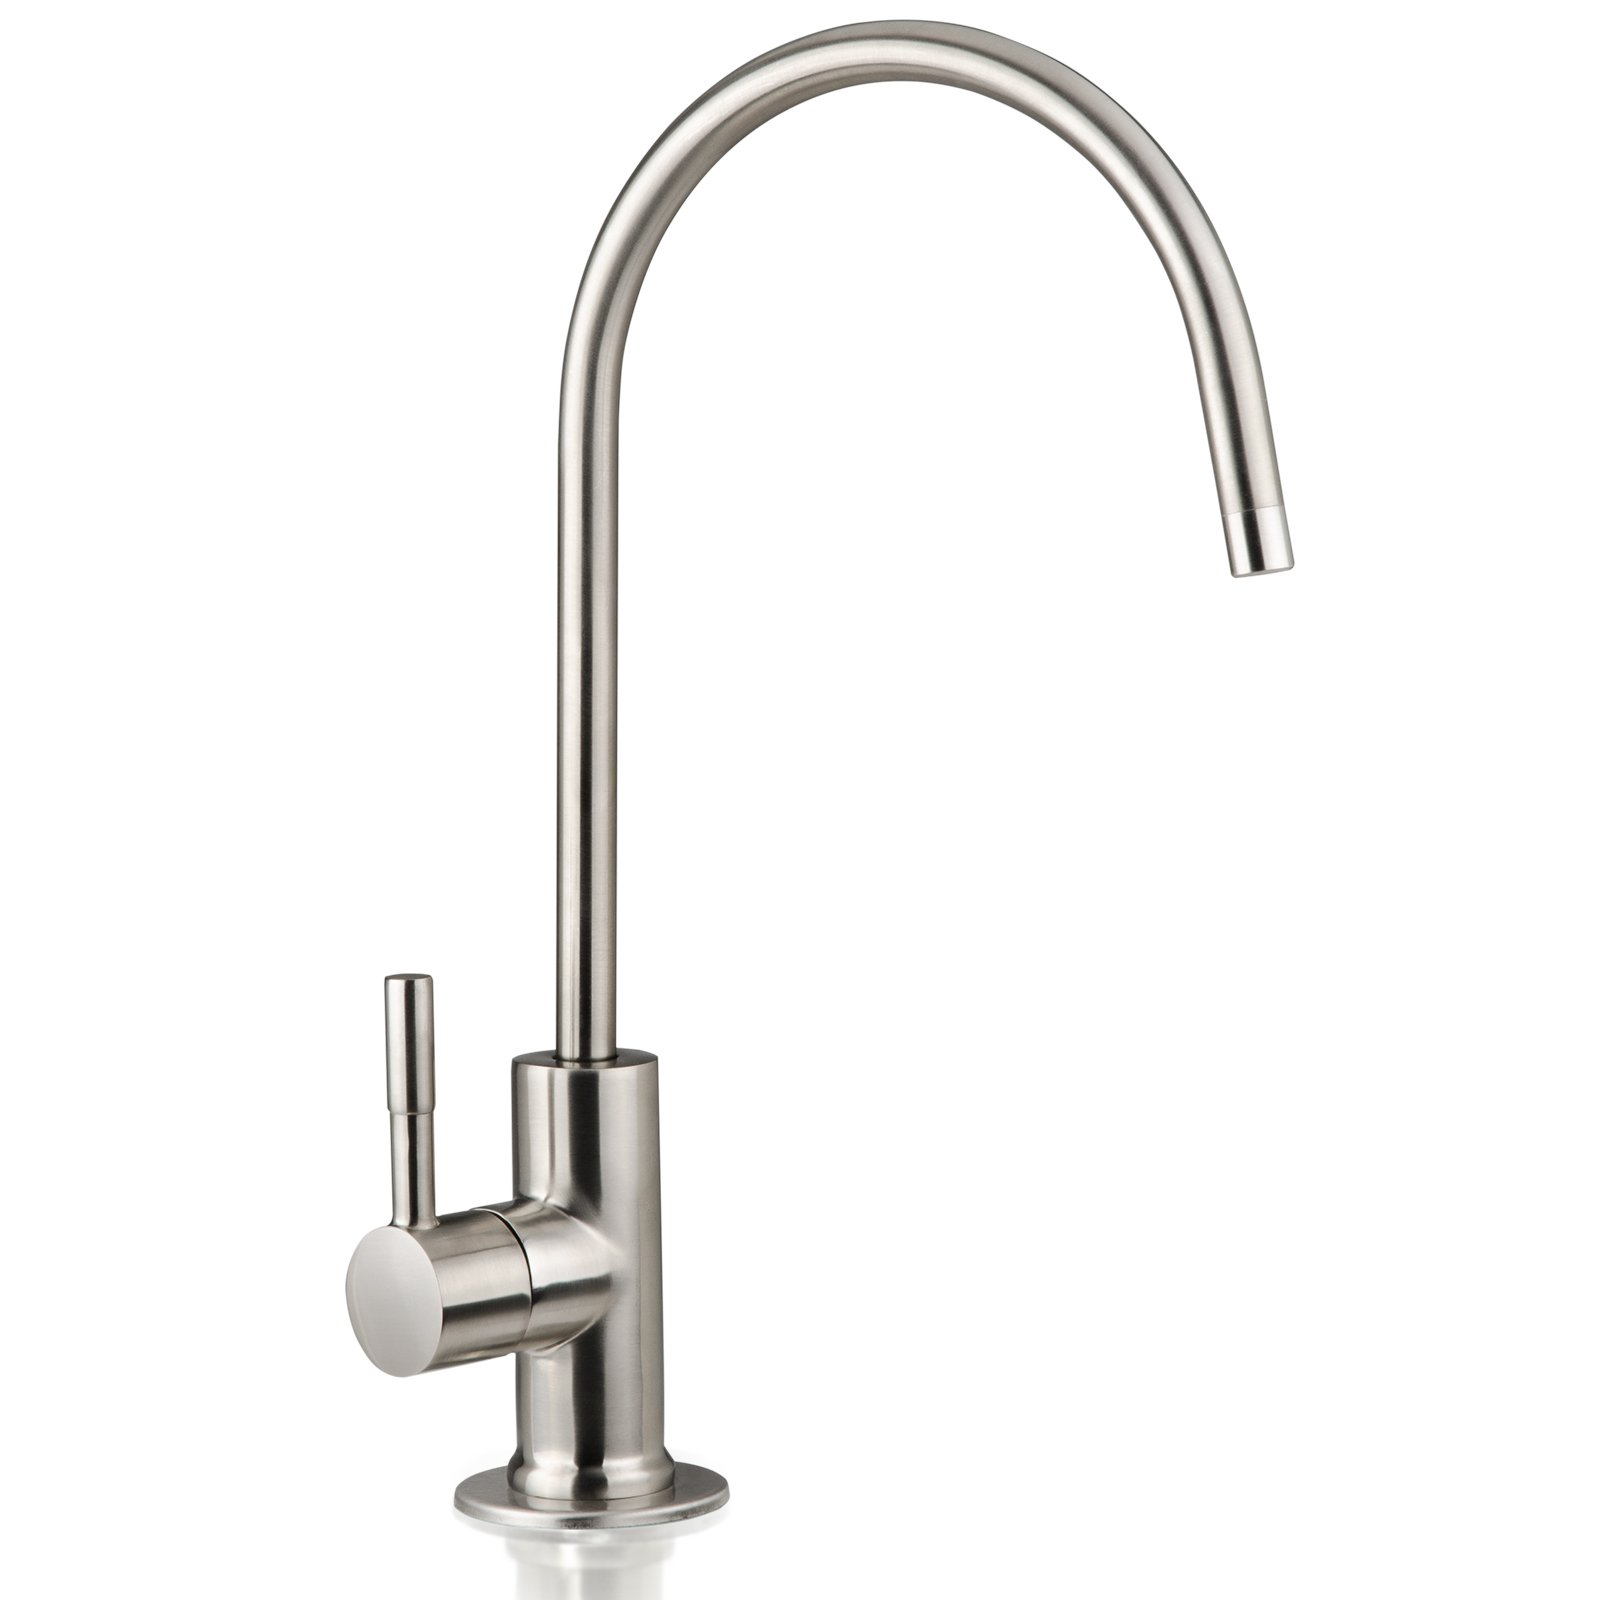 small filter filters top best sink faucet drinking in water bathroom model